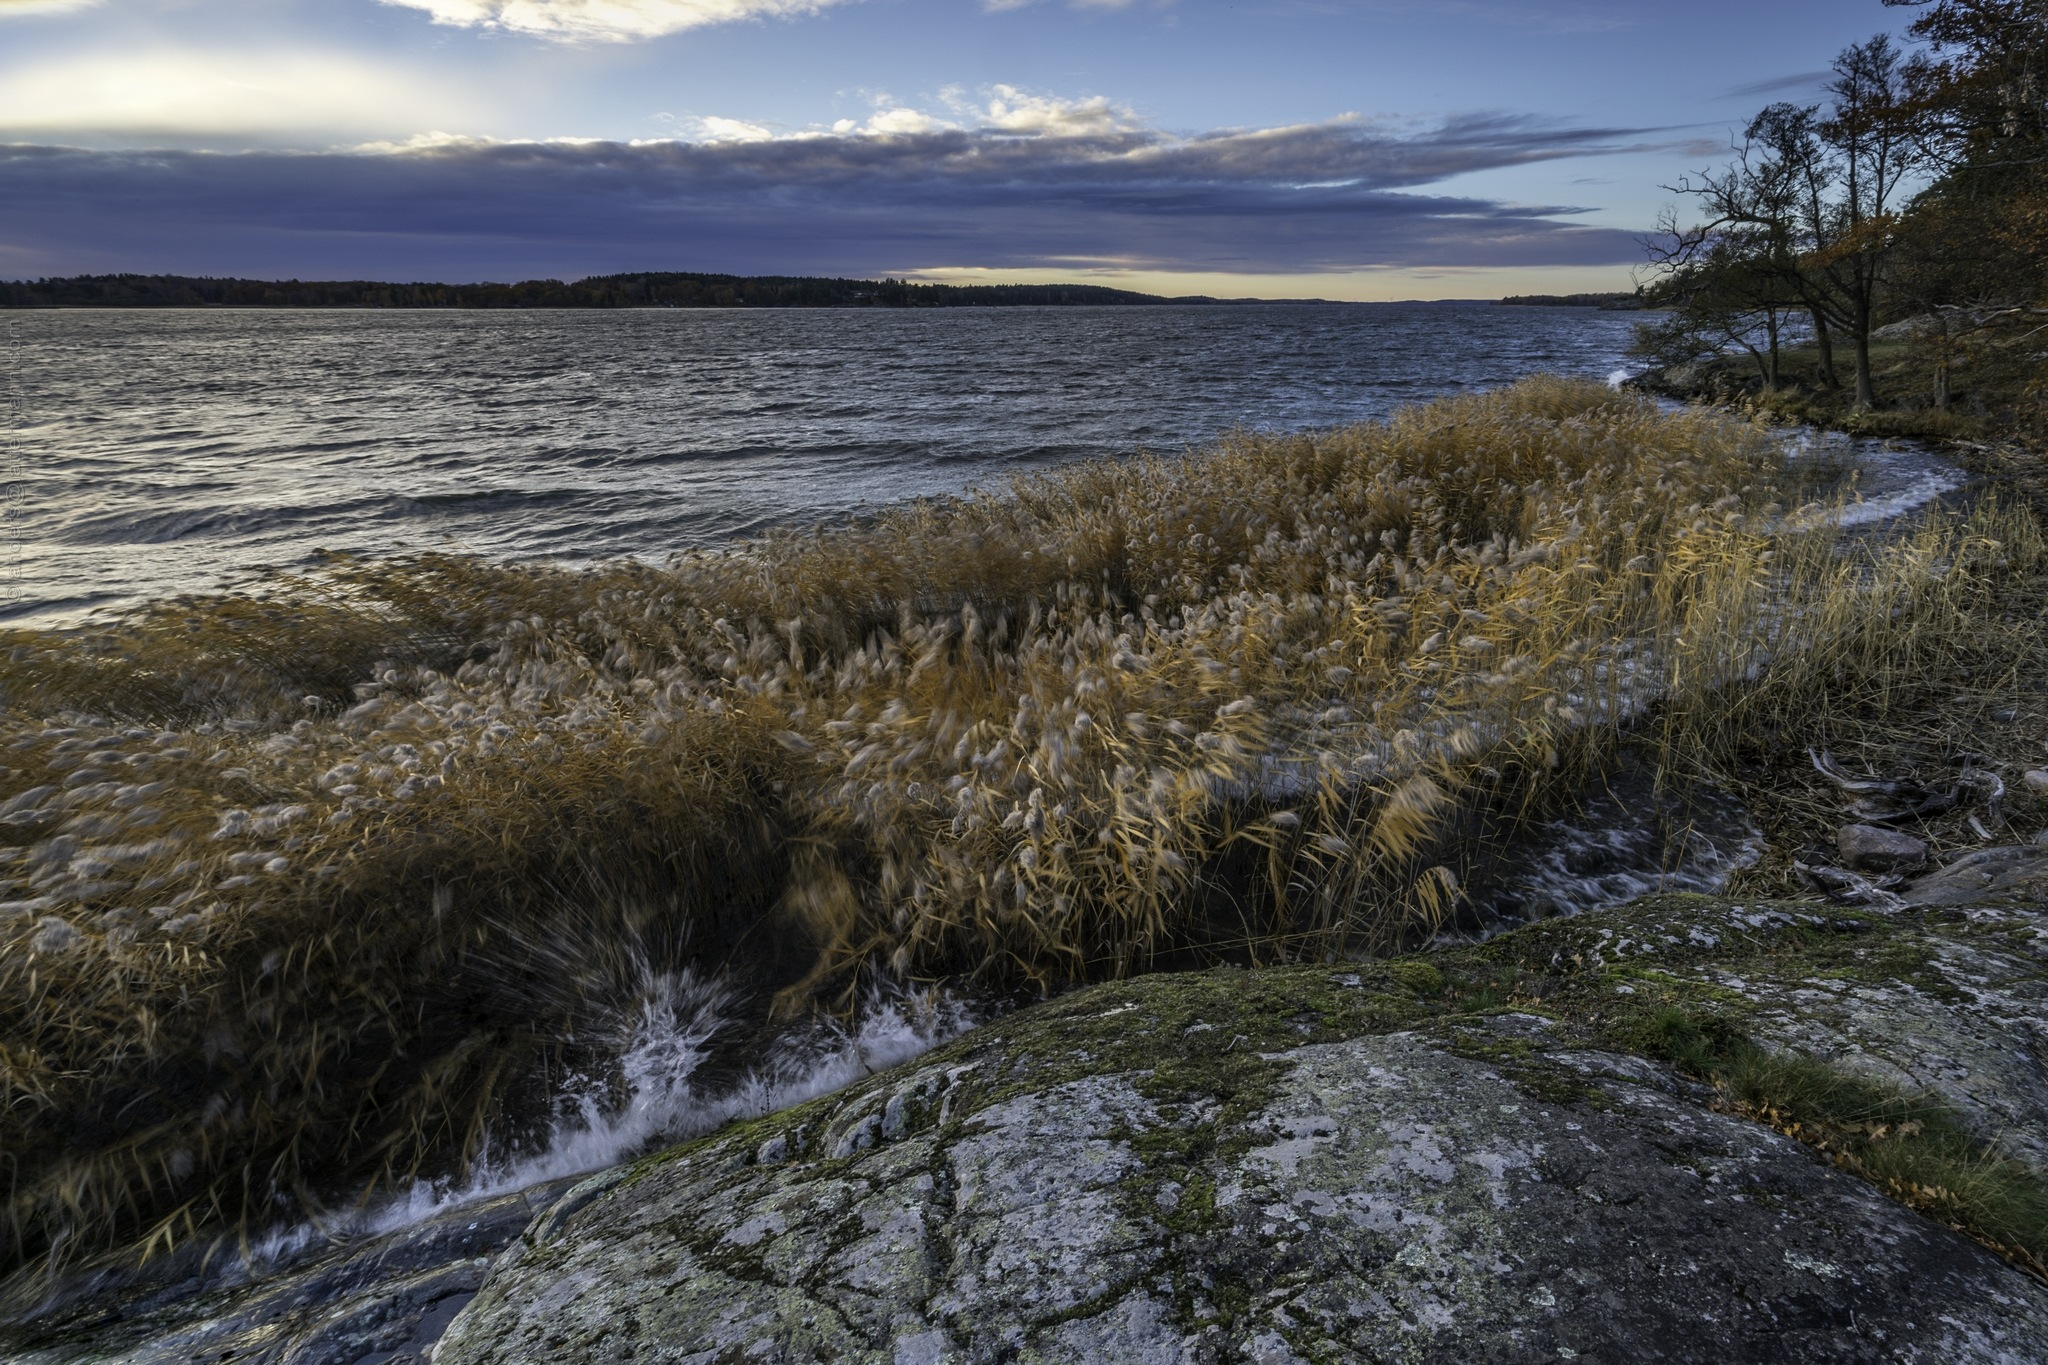 Hard wind by lattesweden - One picture per day. One year in the nature. 2015-11-15 to 2016-11-16